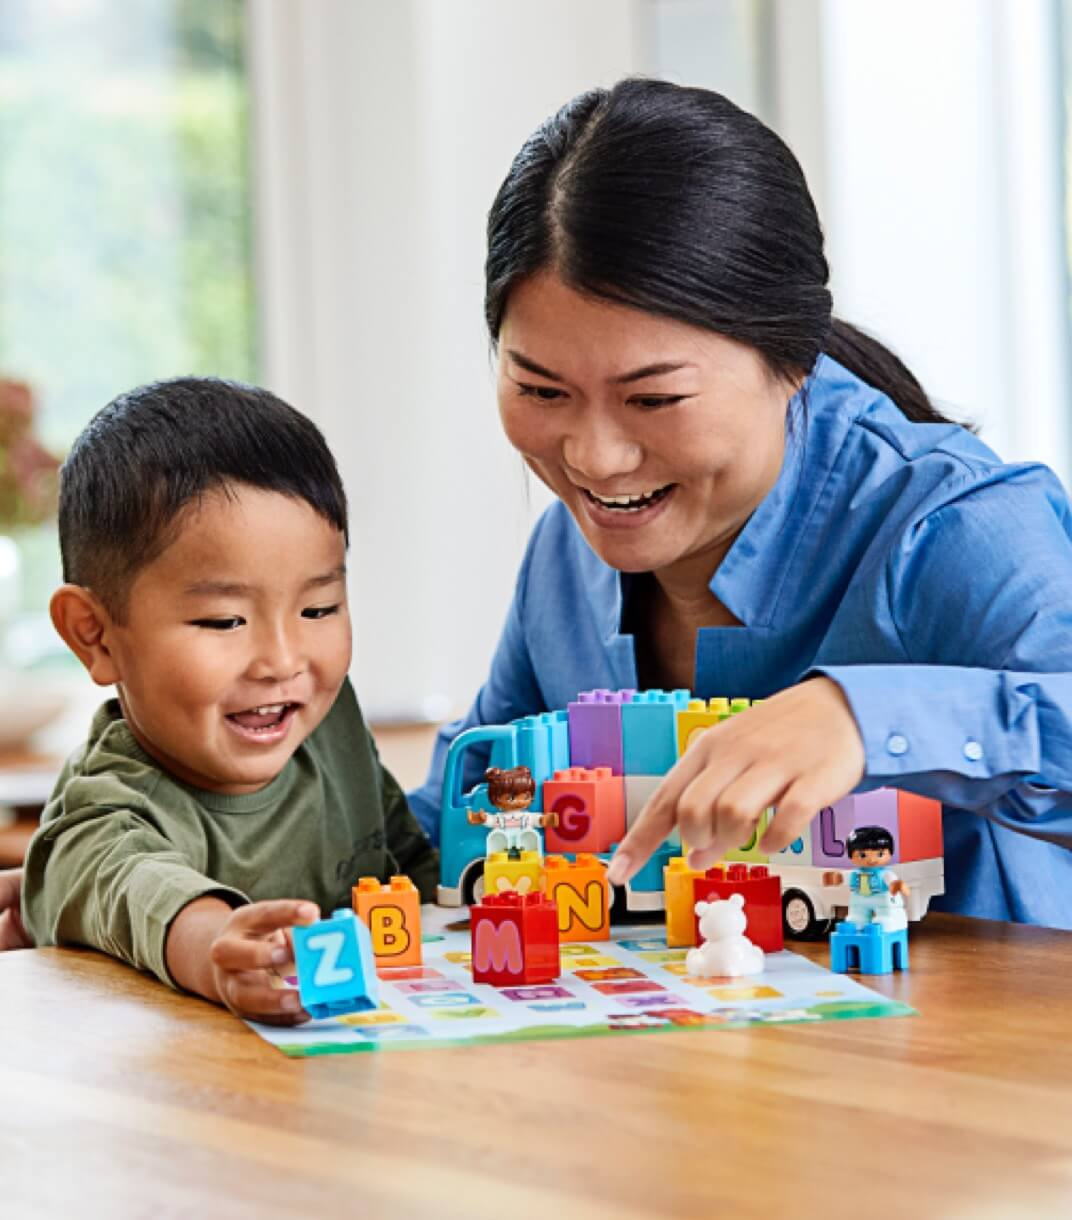 A parent with their child playing with LEGO interlocking blocks.